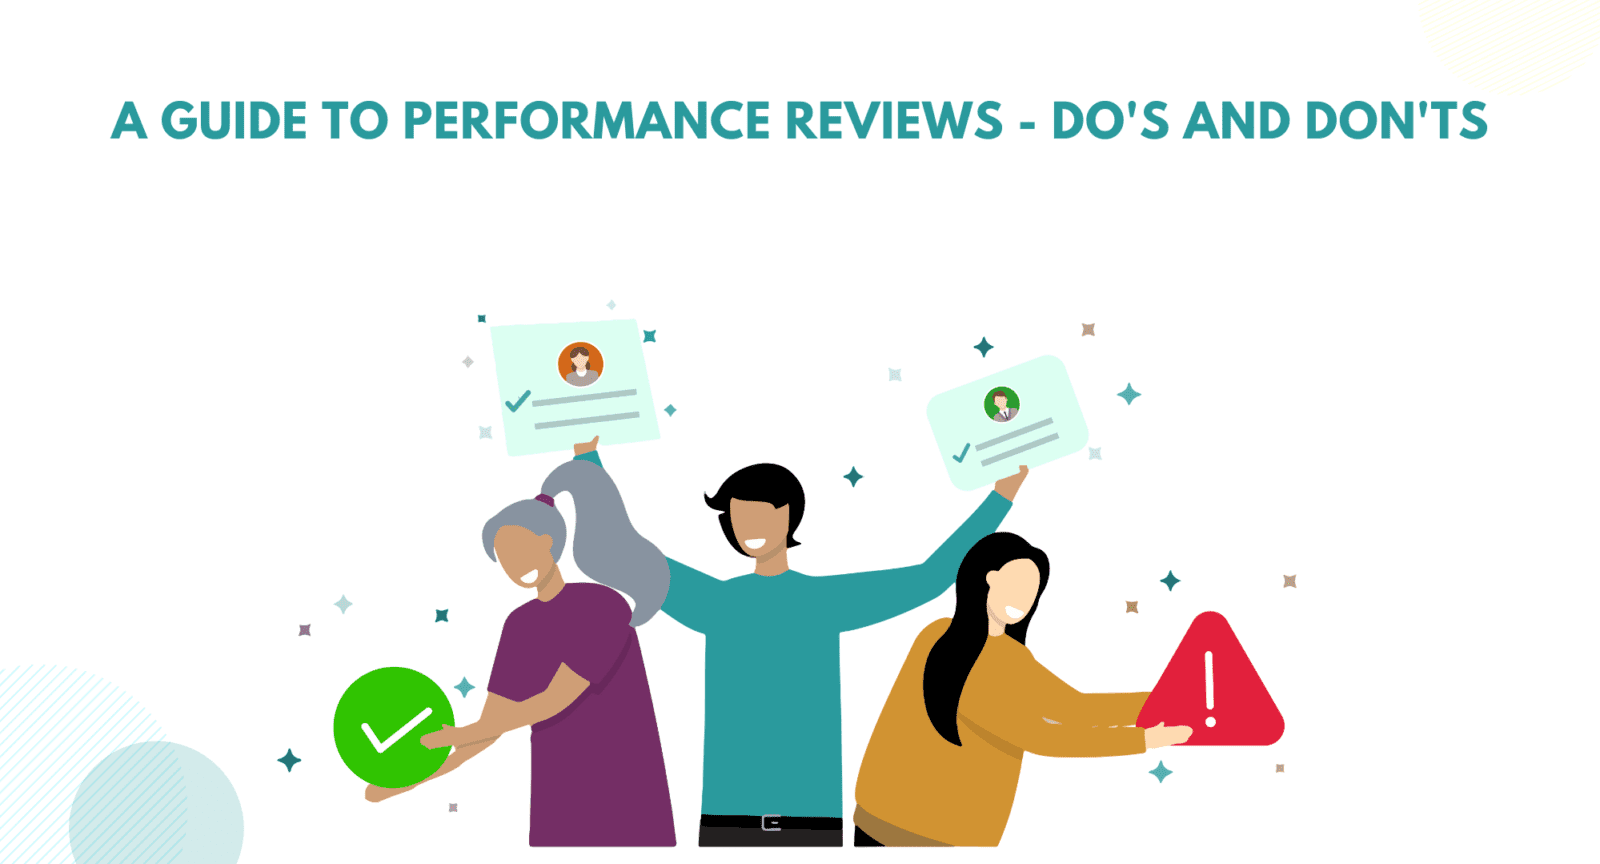 Tips to give performance reviews. How to give performance reviews. A guide to performance reviews. Dos and don'ts of performance reviews. Tips on how to give performance reviews. How to give performance appraisals.